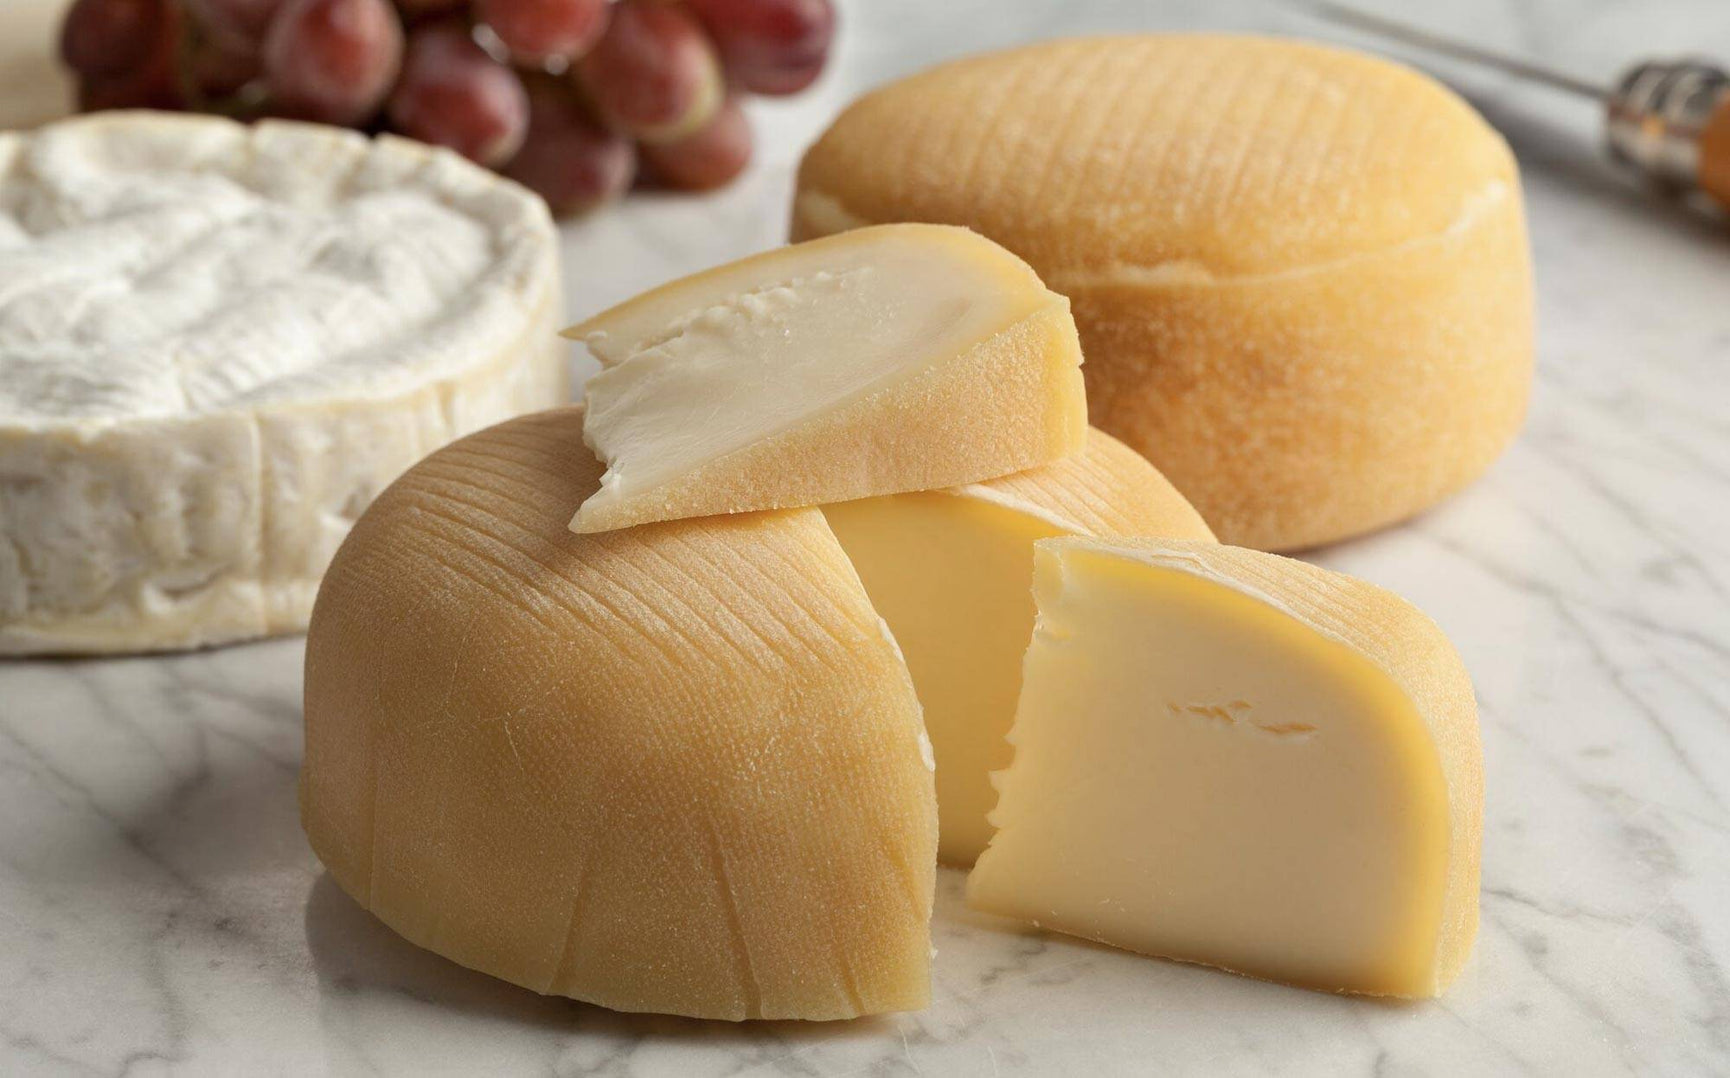 How to make cheese